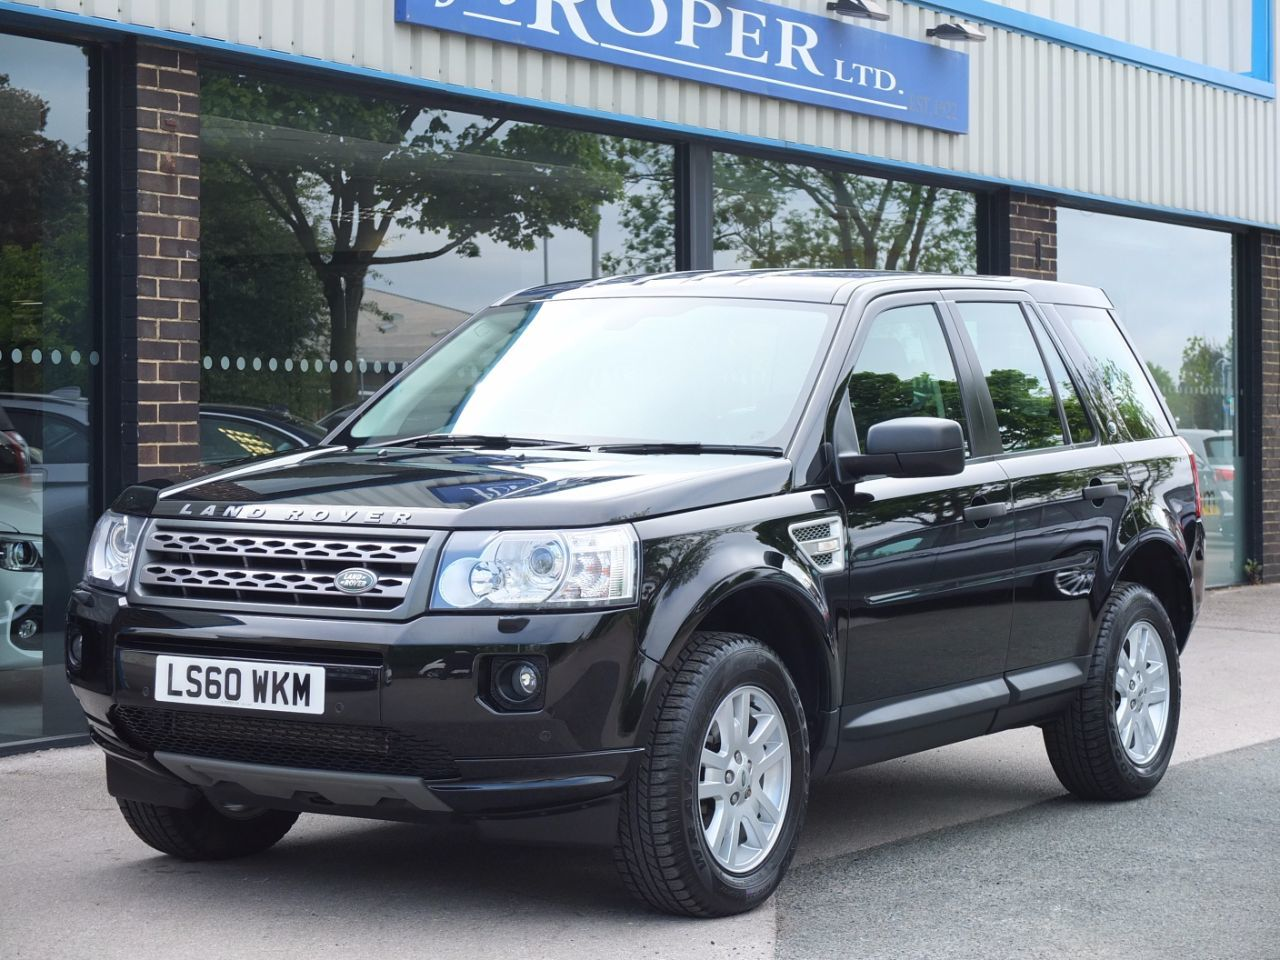 Land Rover Freelander 2.2 TD4 XS Estate Diesel Santorini Black Metallic